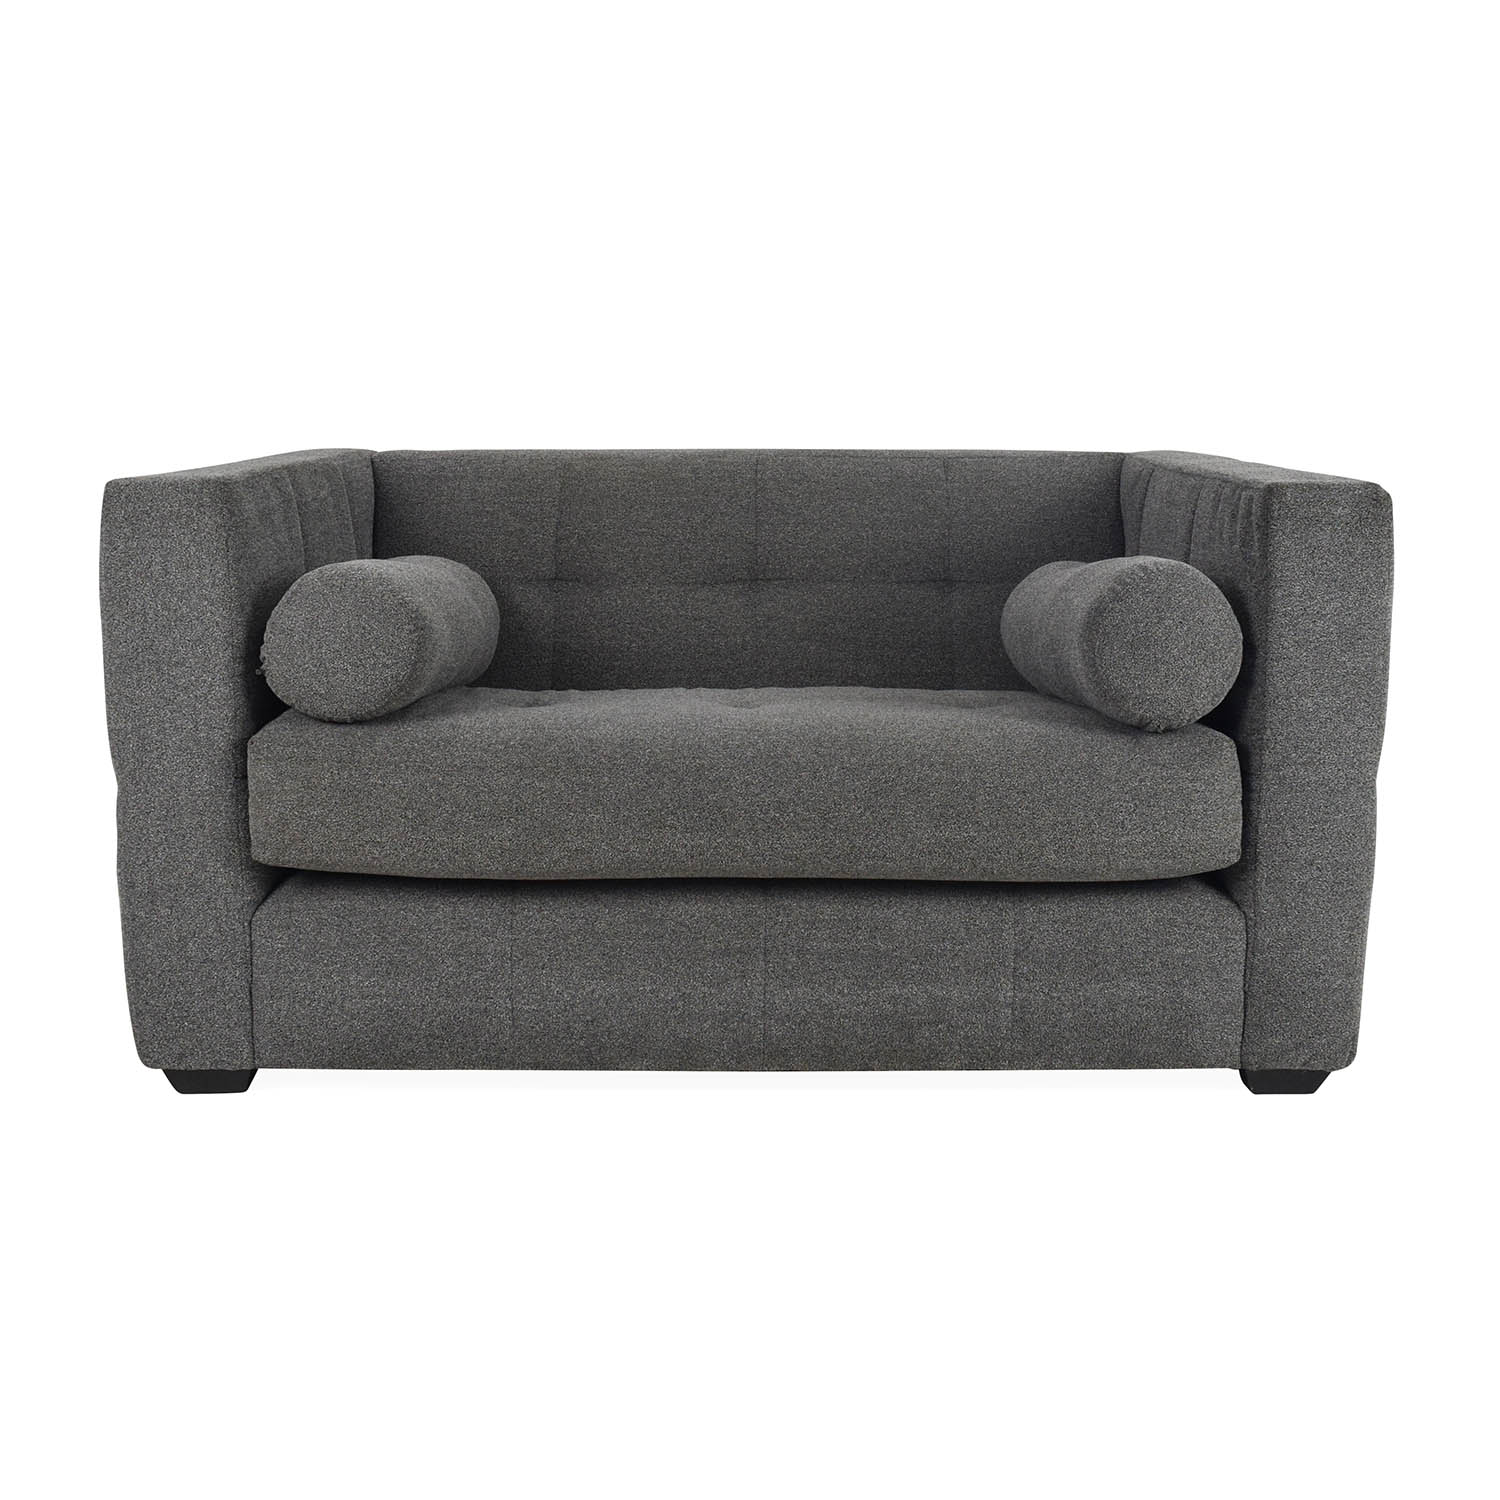 shop Decor NYC Boucle Loveseat Decor NYC Sofas